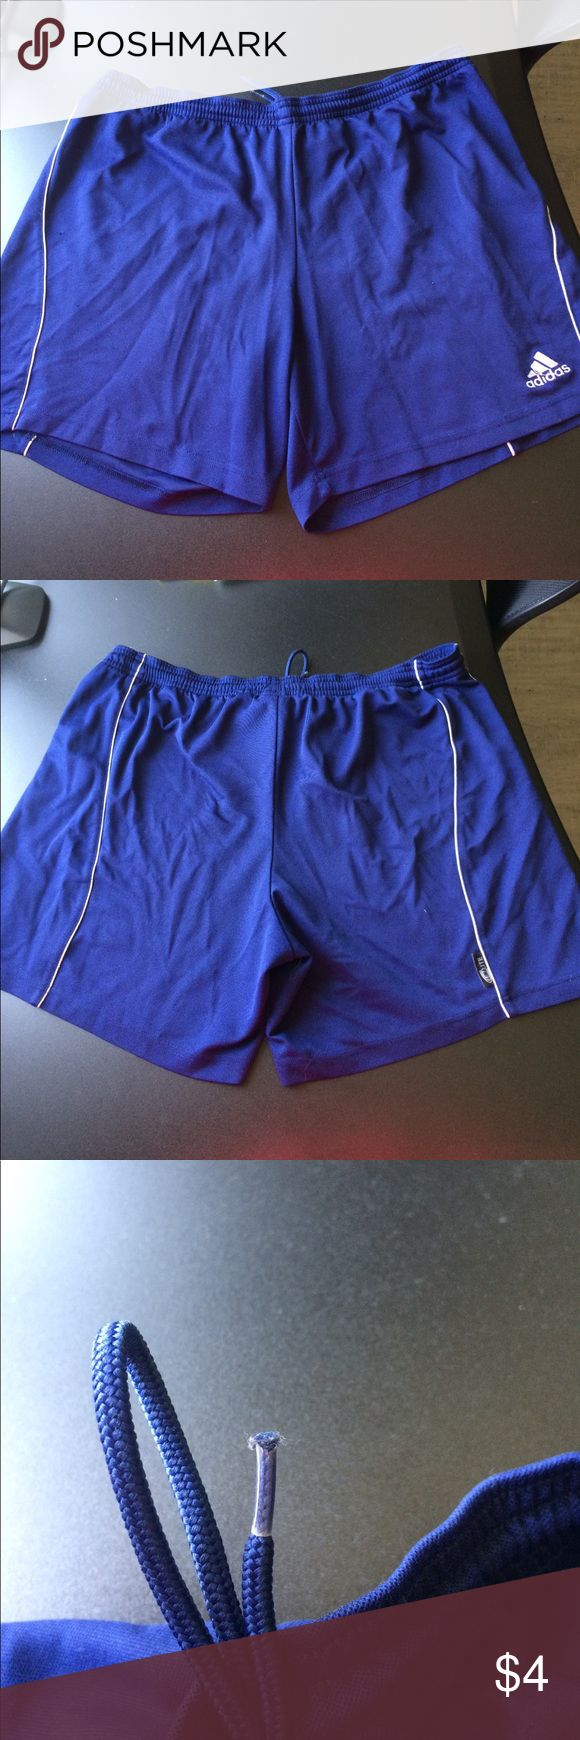 Adidas Soccer Shorts Adidas Soccer Shorts - Navy, frayed aglets, unnoticeable snags adidas Shorts